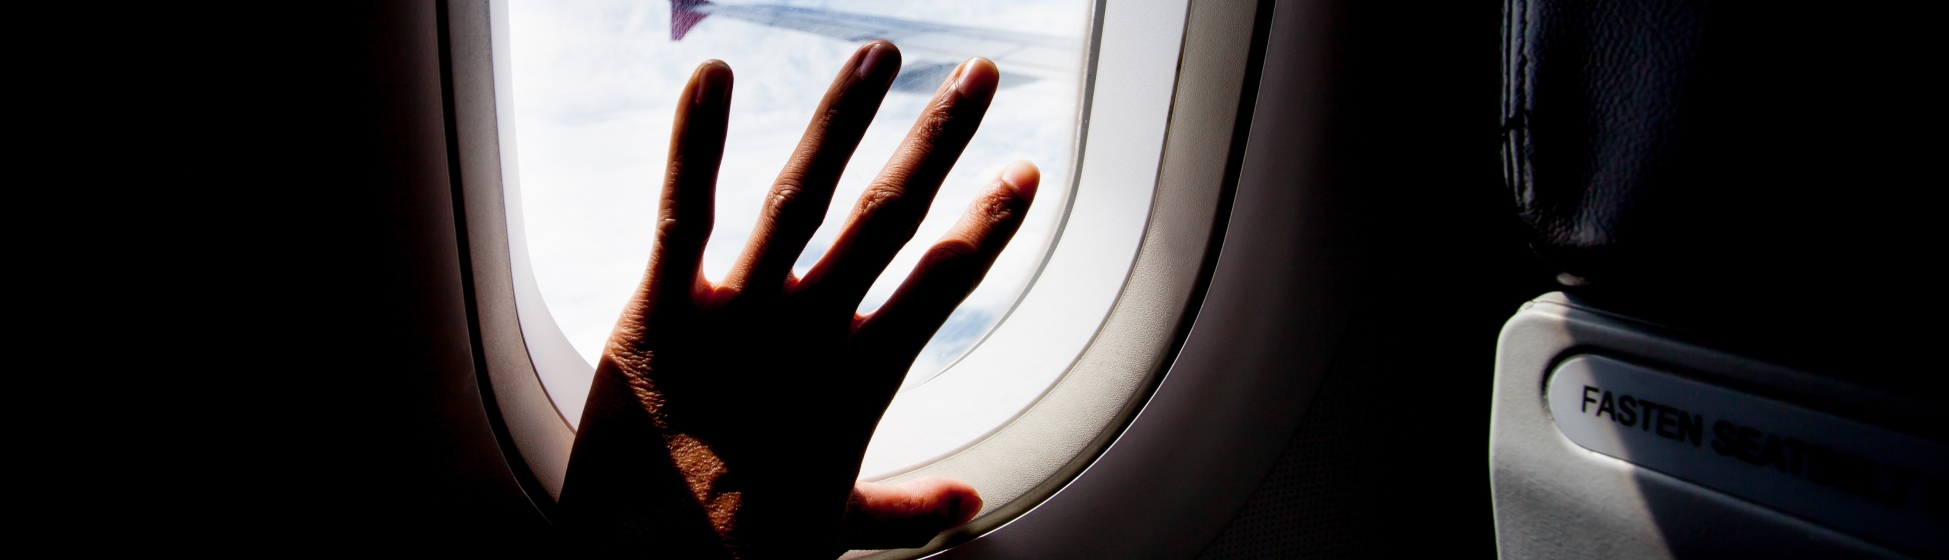 Hand on plane window